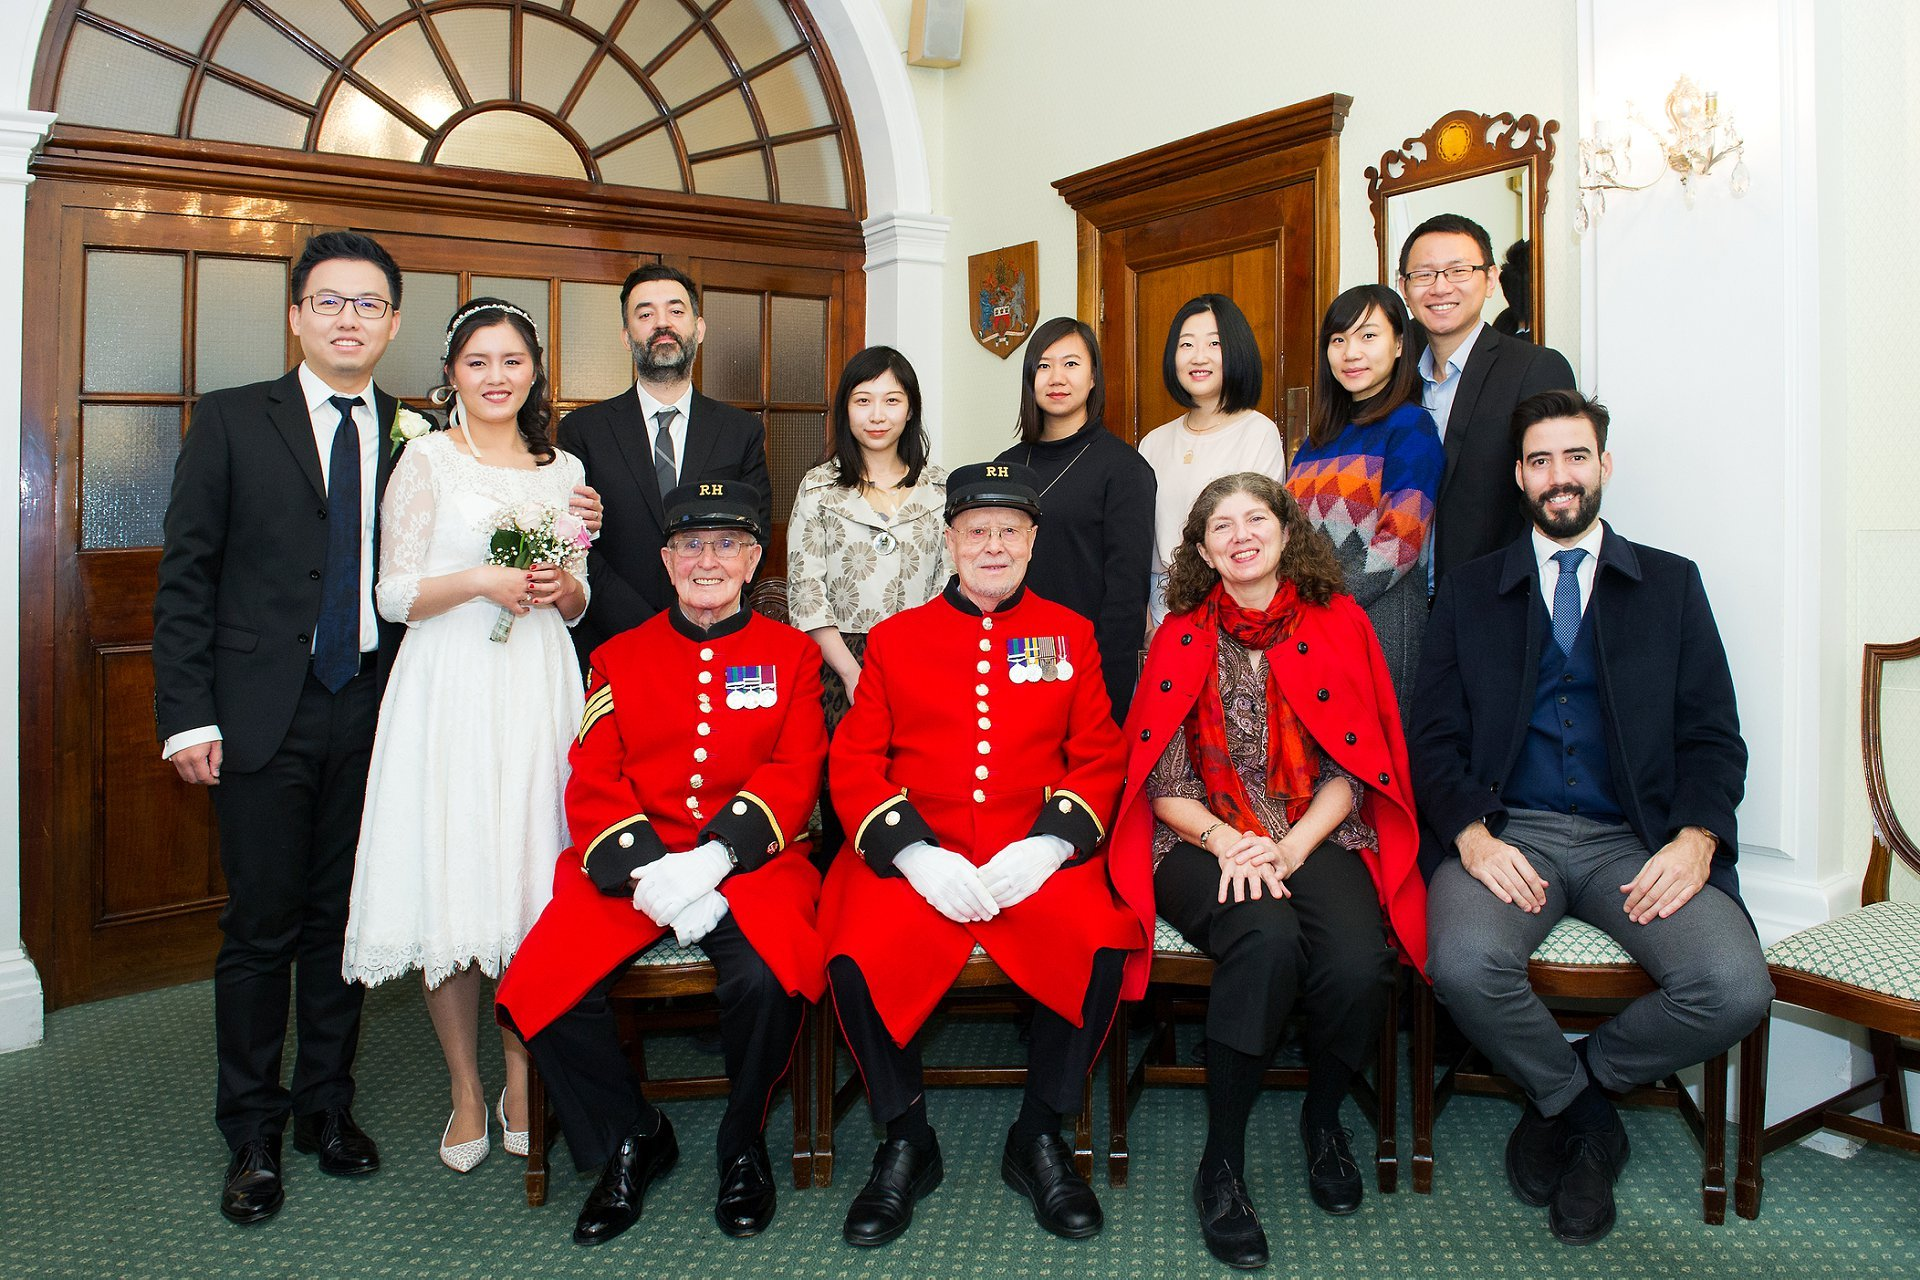 chelsea pensioners rossetti room ceremony with bride and groom and their guests